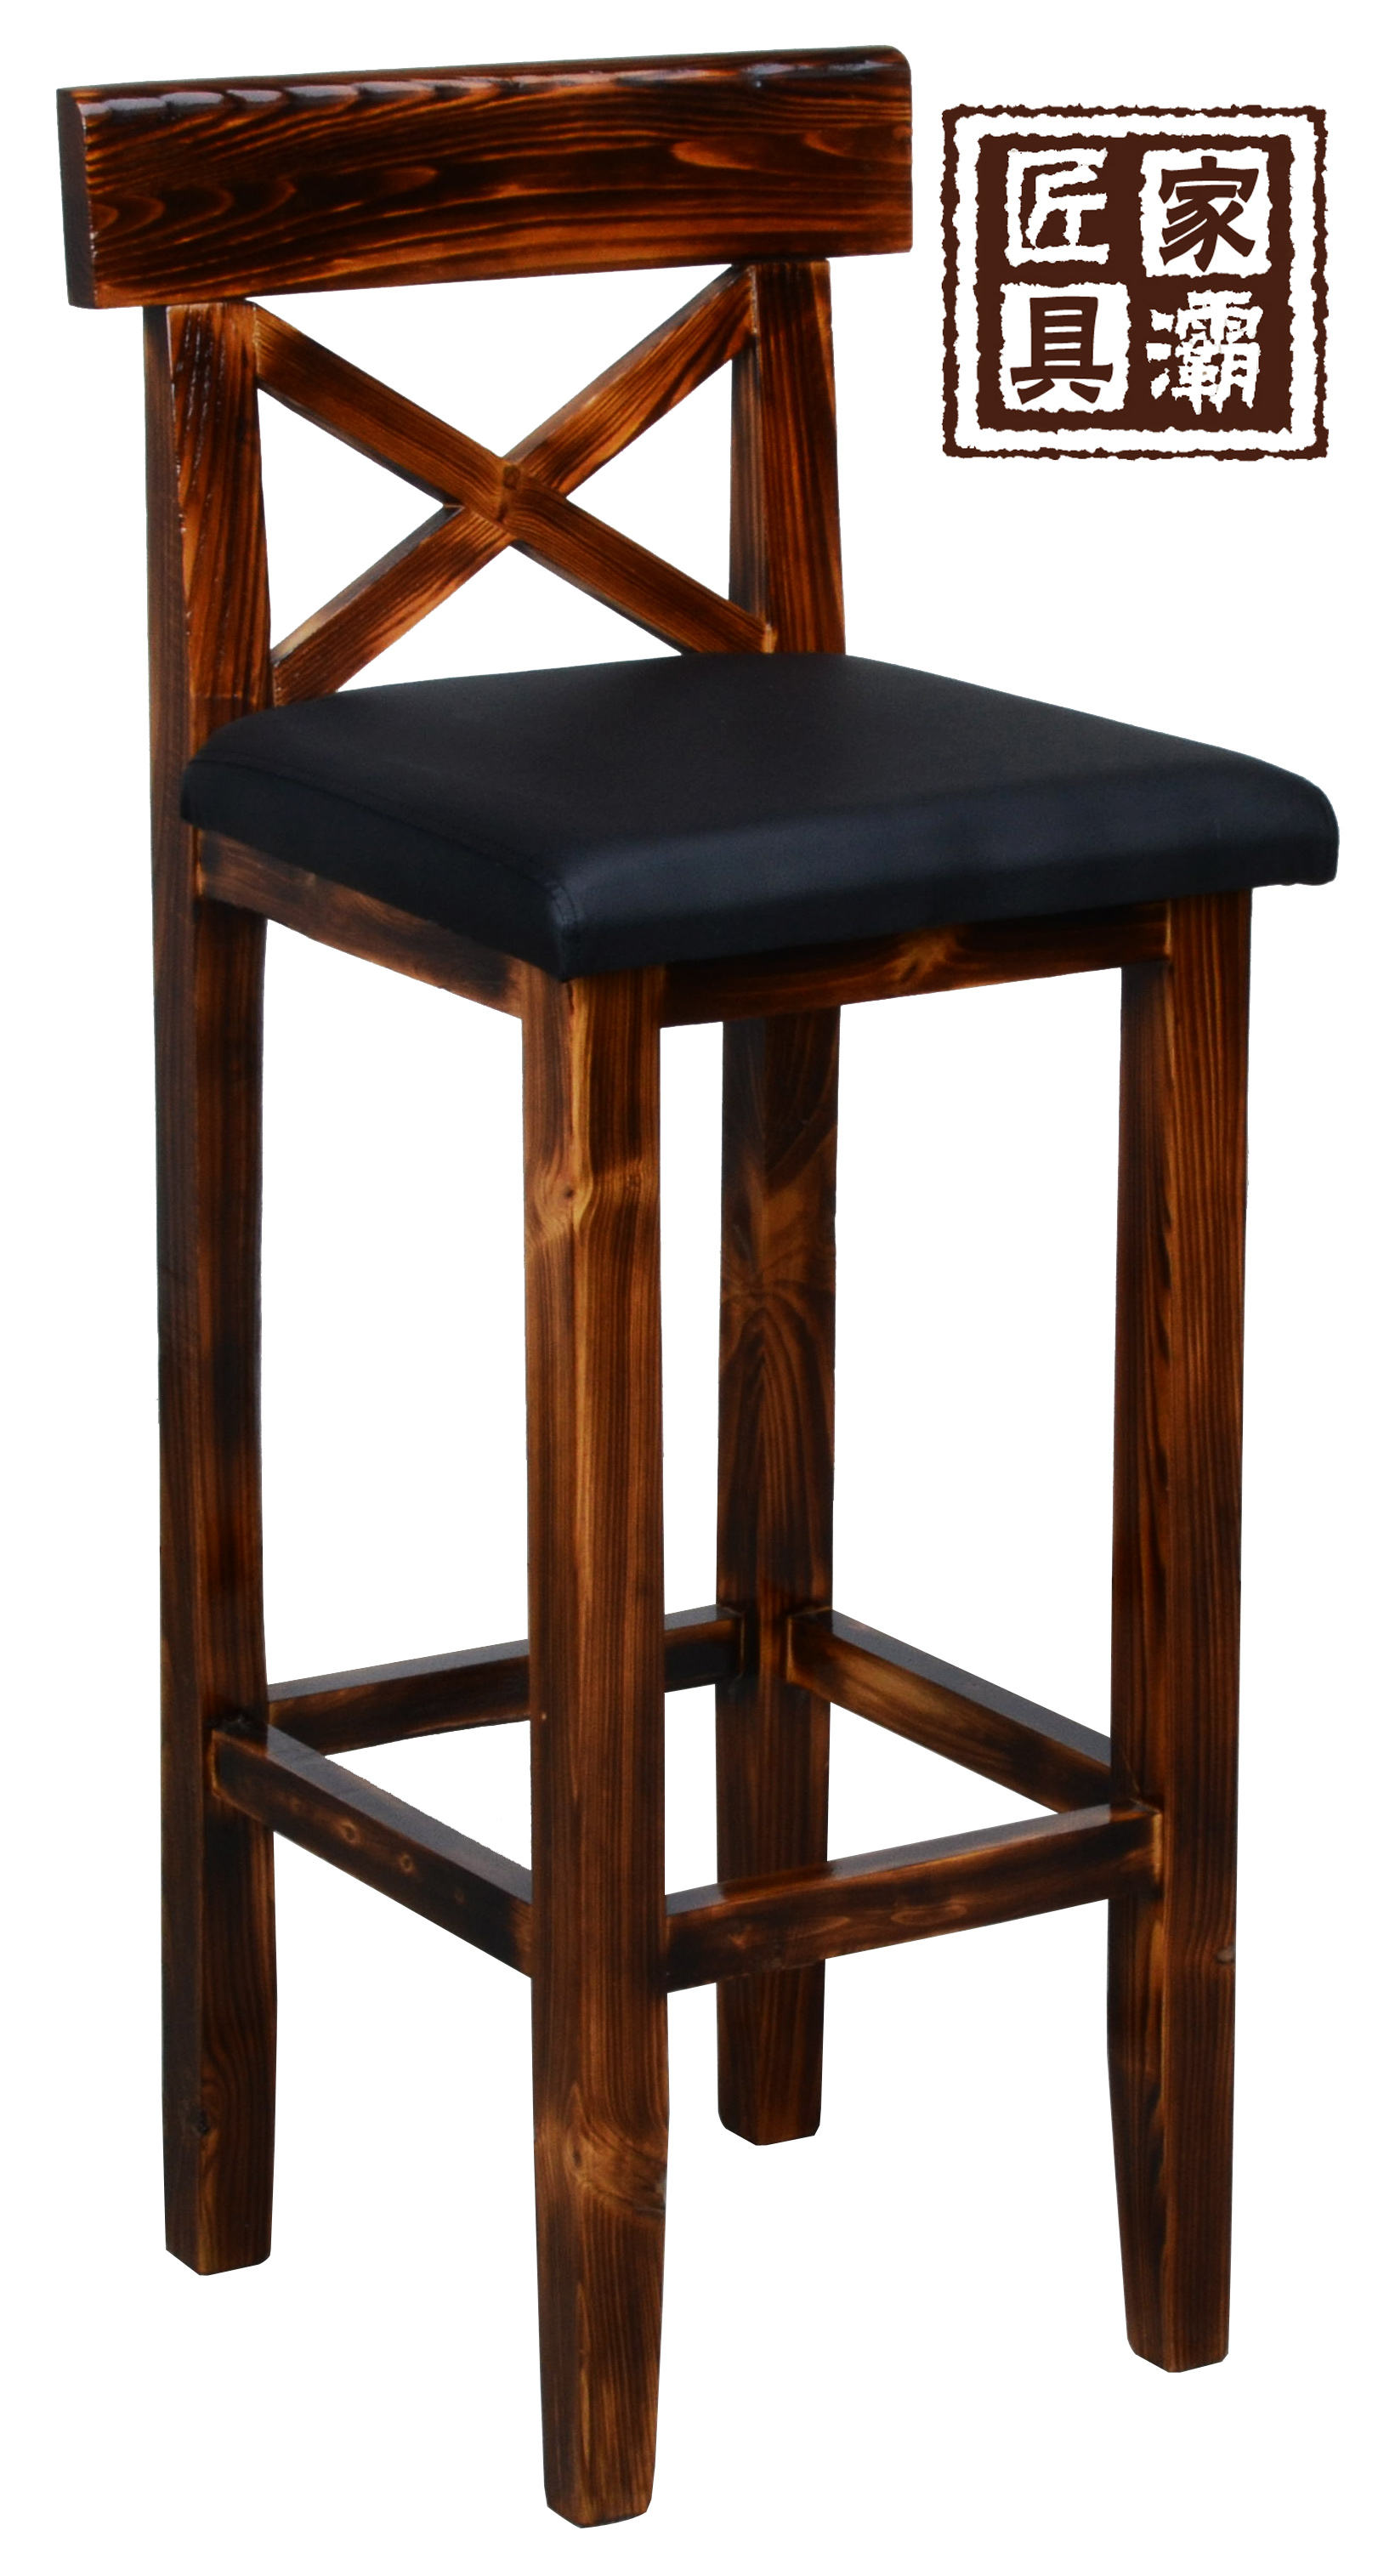 Highchairs wood bar stool bar chairs wood bar stool bar stool bar chairs bar stool bar stool bar stool bar chair